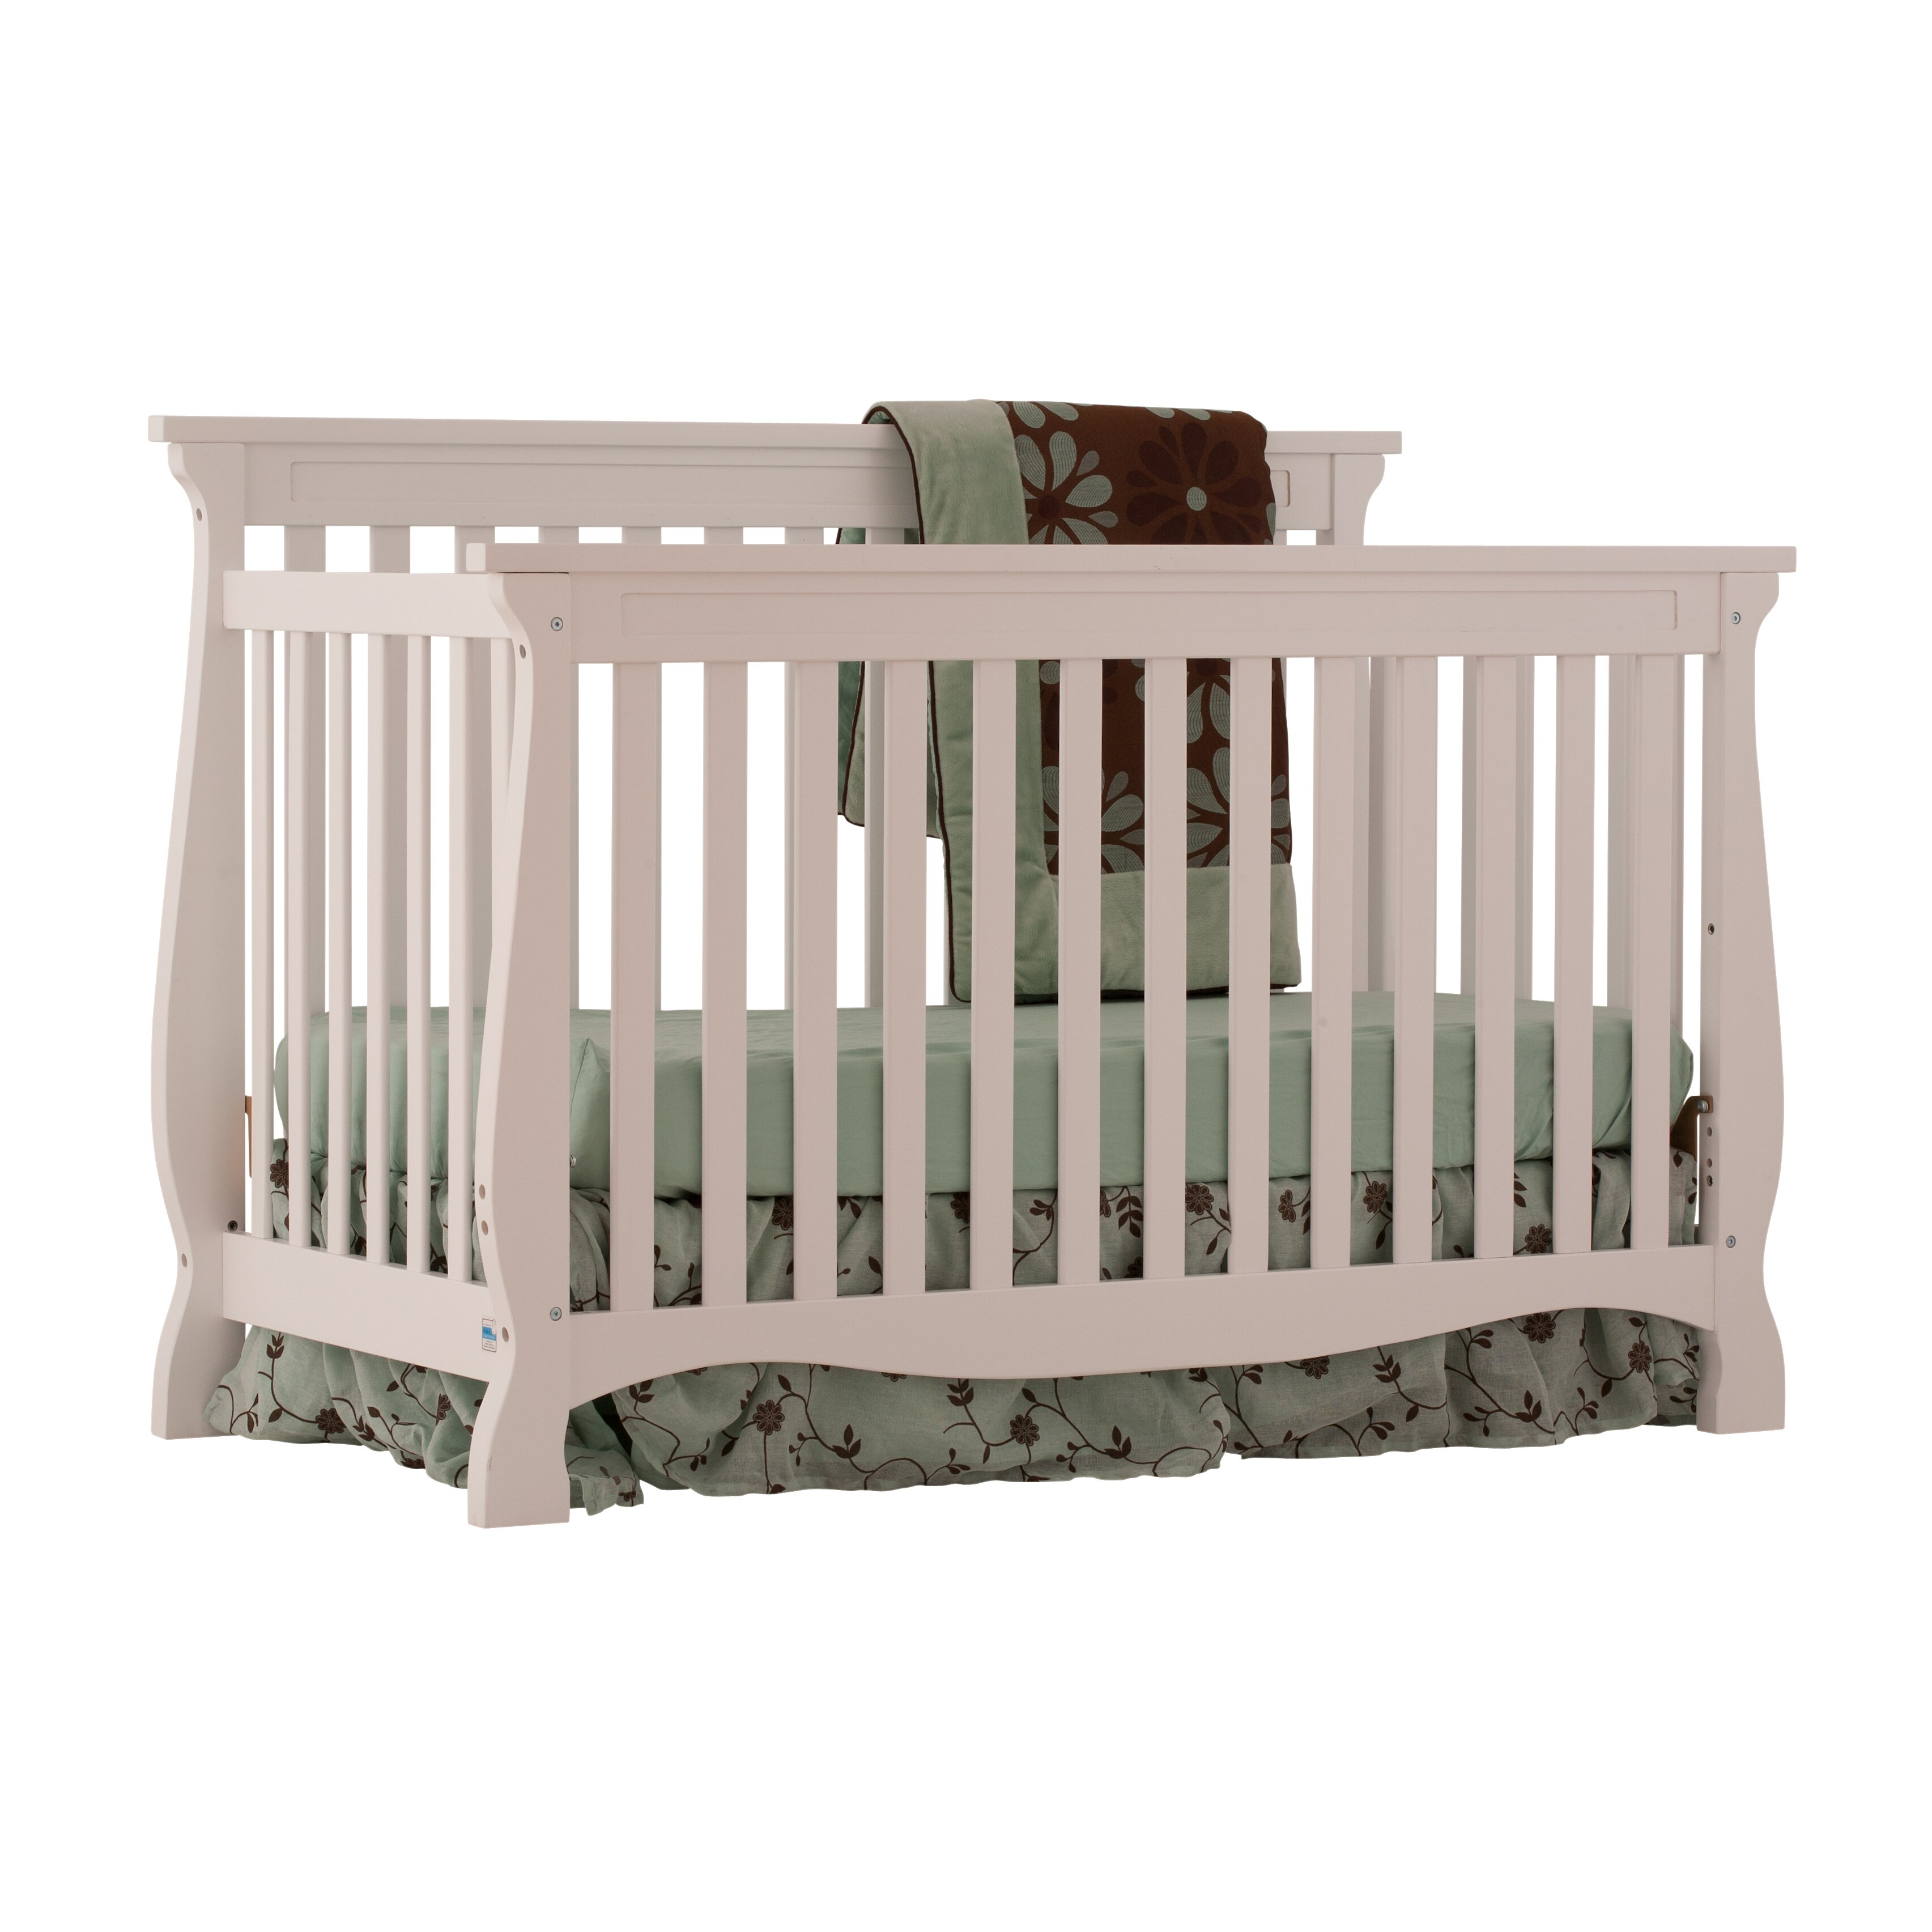 Storkcraft Carrara Fixed Side Convertible Crib 04587 101 KD1682 on kd kitchens and bath